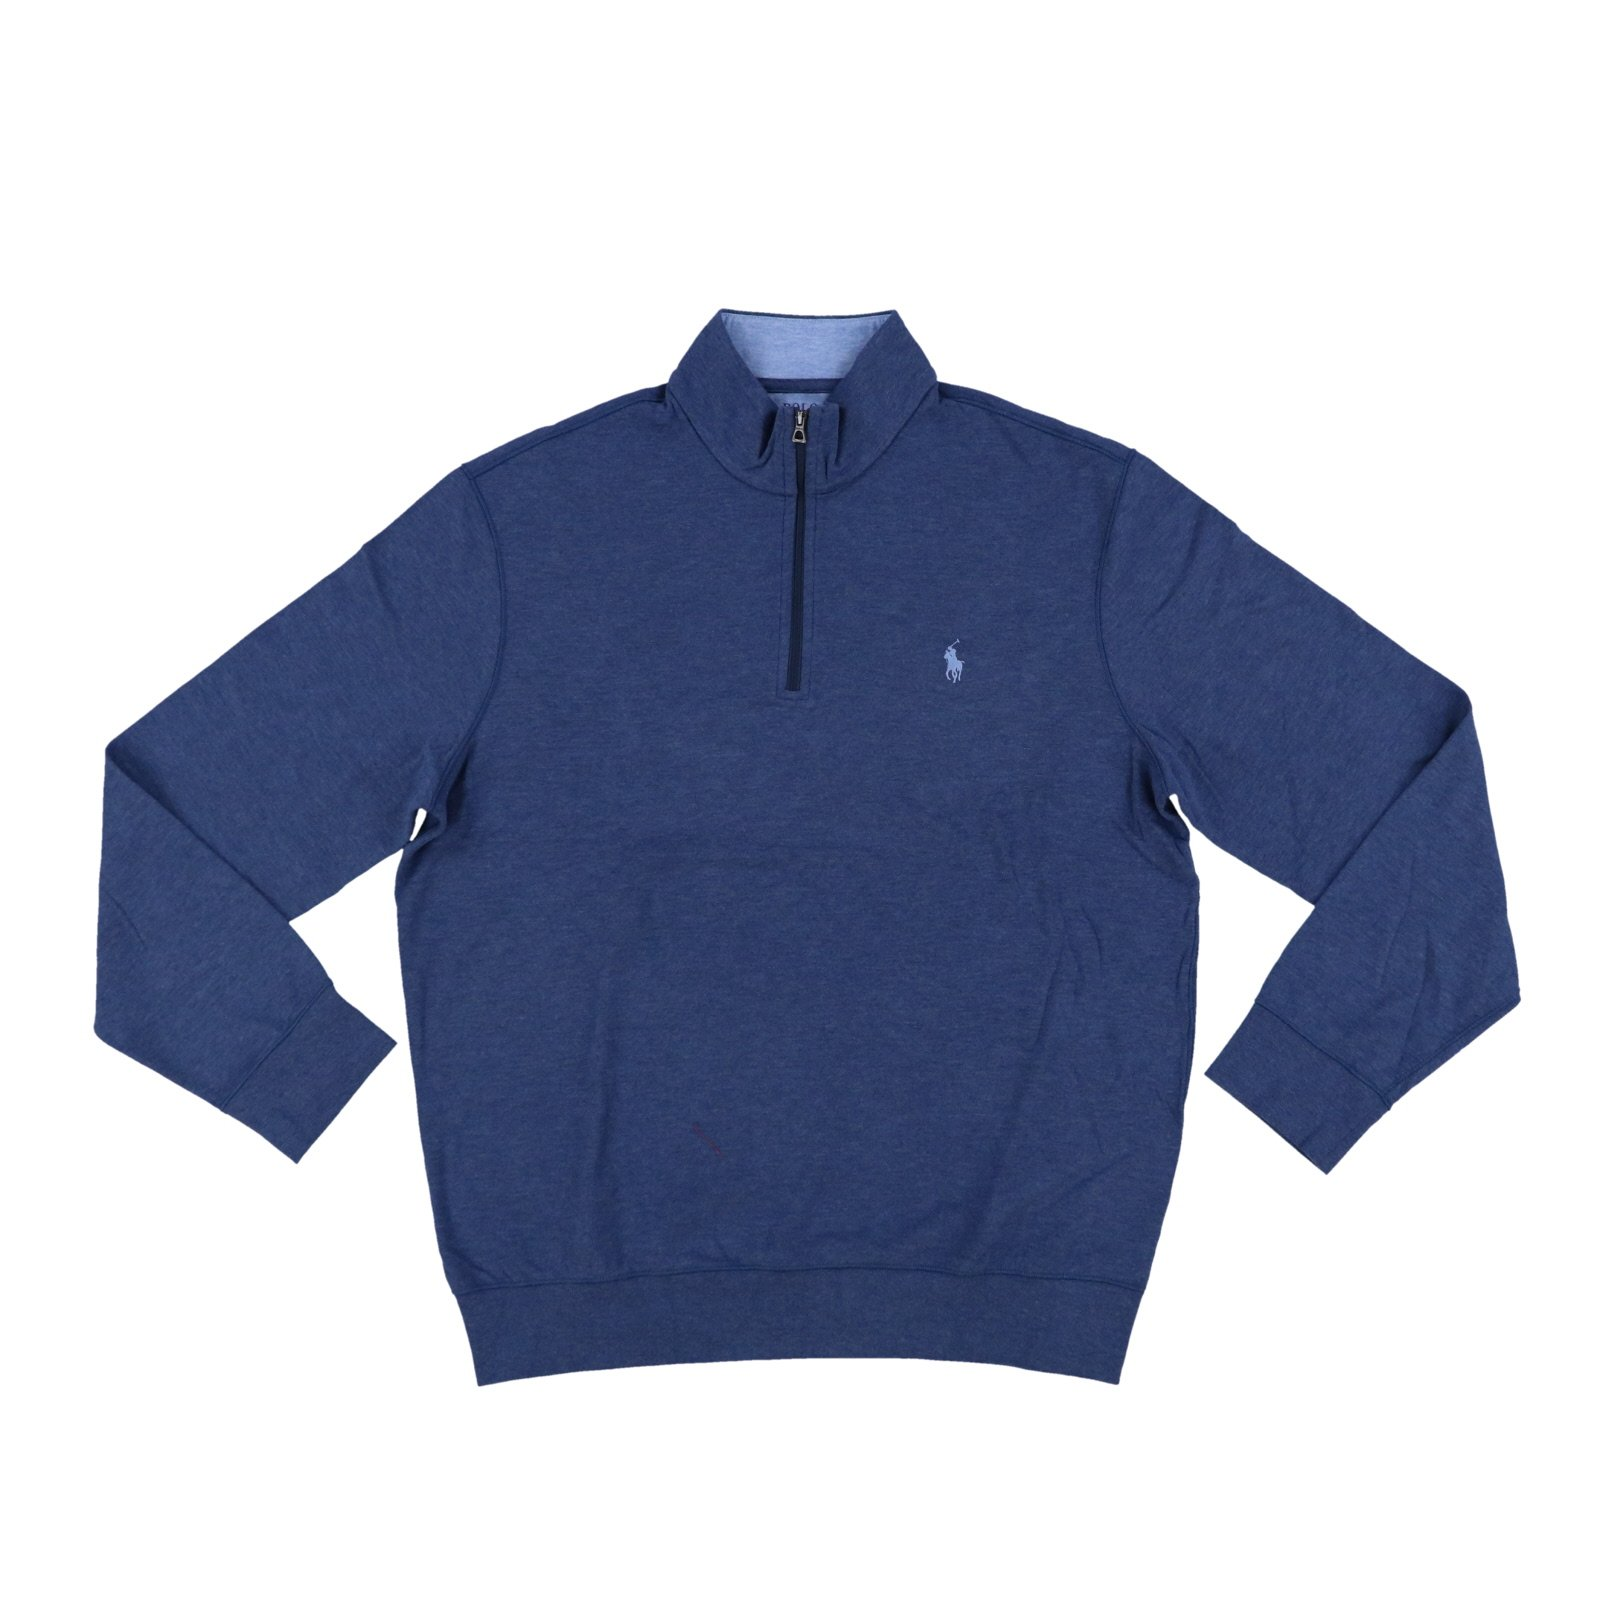 Polo Ralph Lauren Men's Quarter Zip Sweater (Small, Deep Blue)